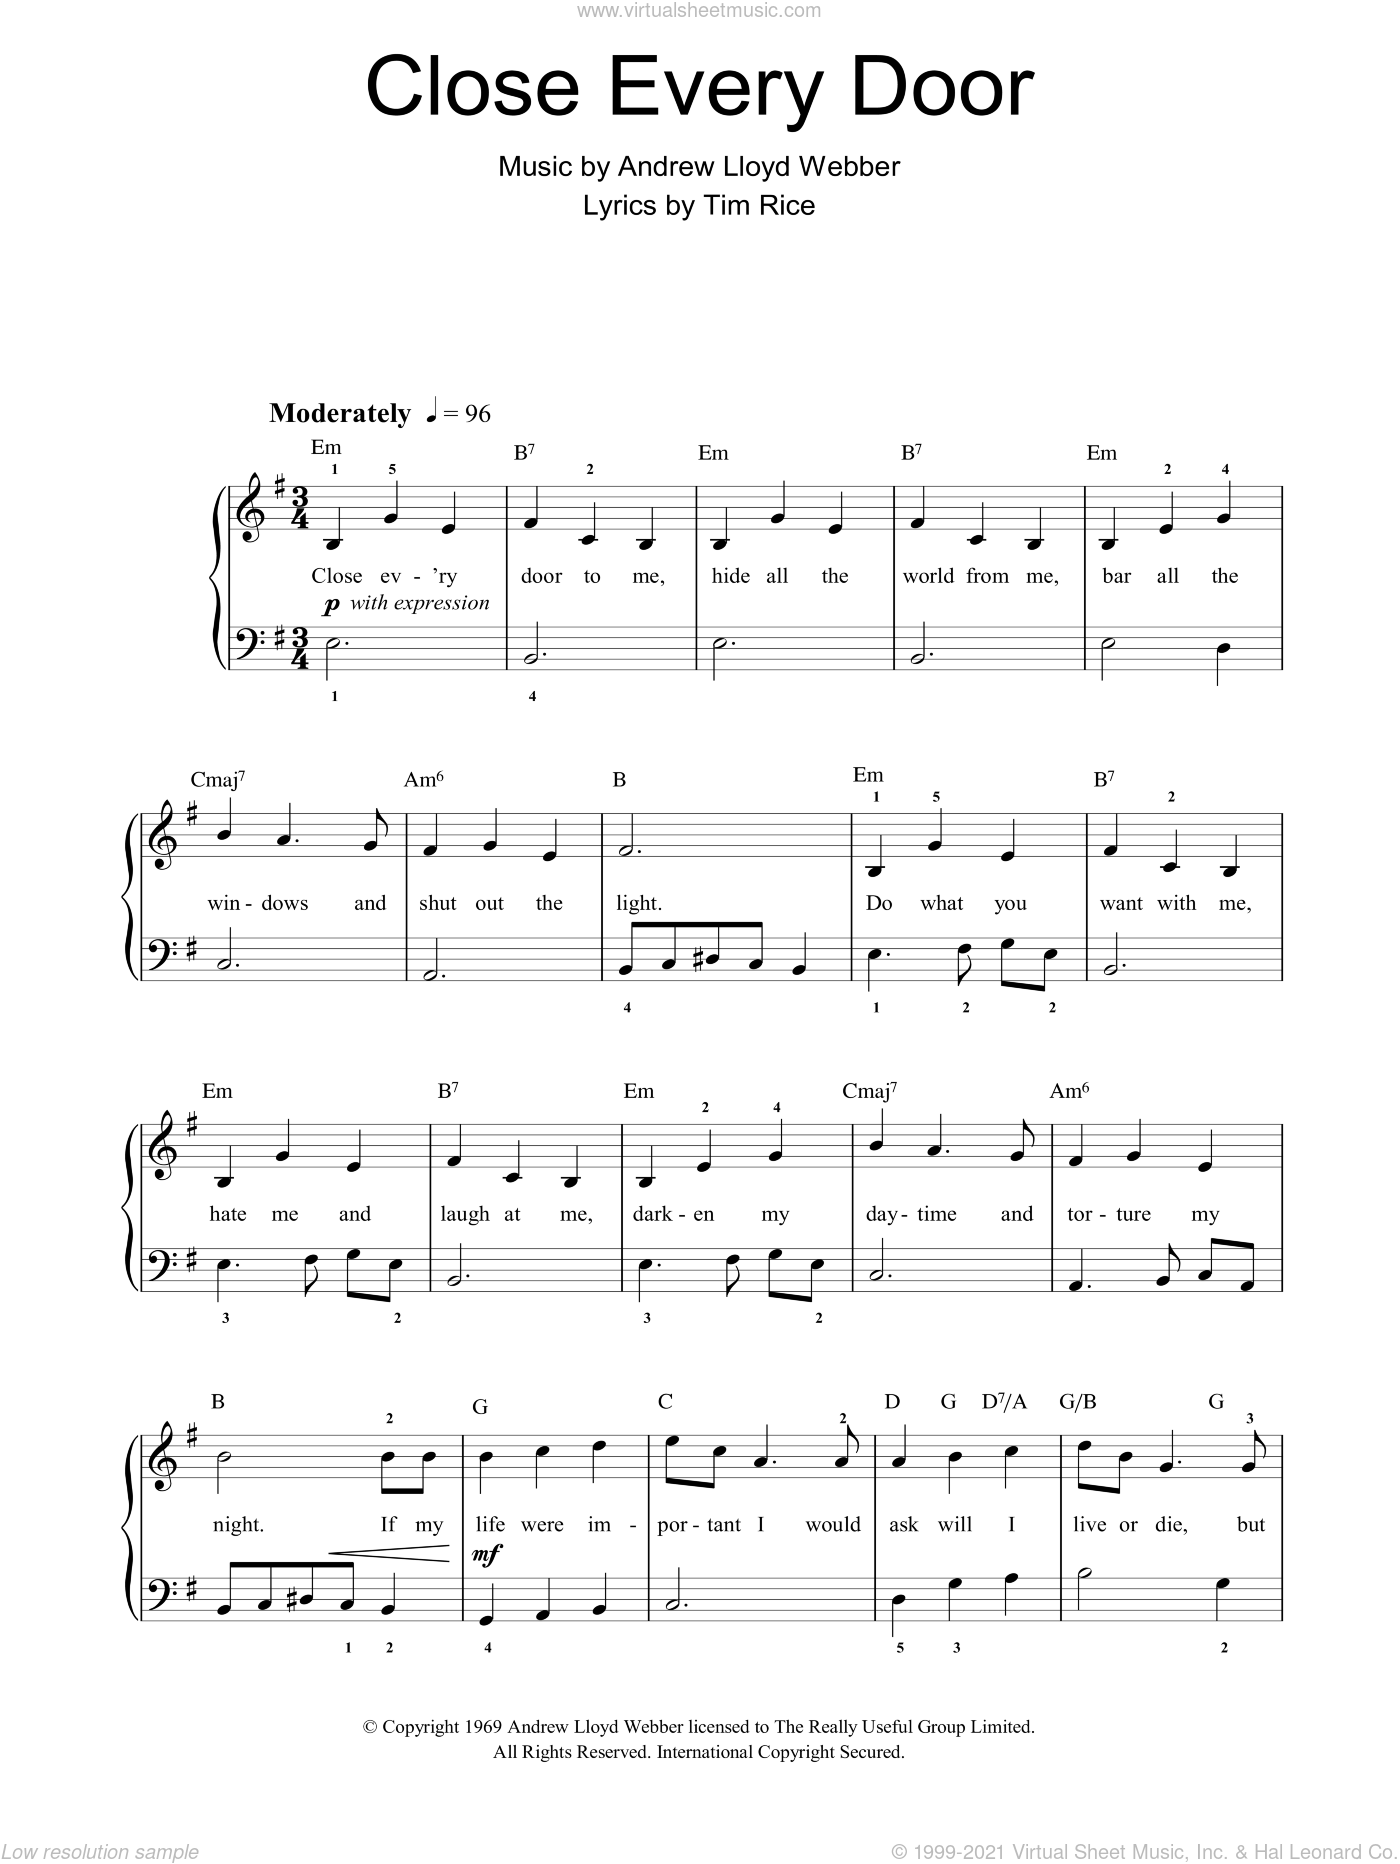 Close Every Door sheet music for piano solo by Andrew Lloyd Webber and Tim Rice, easy skill level